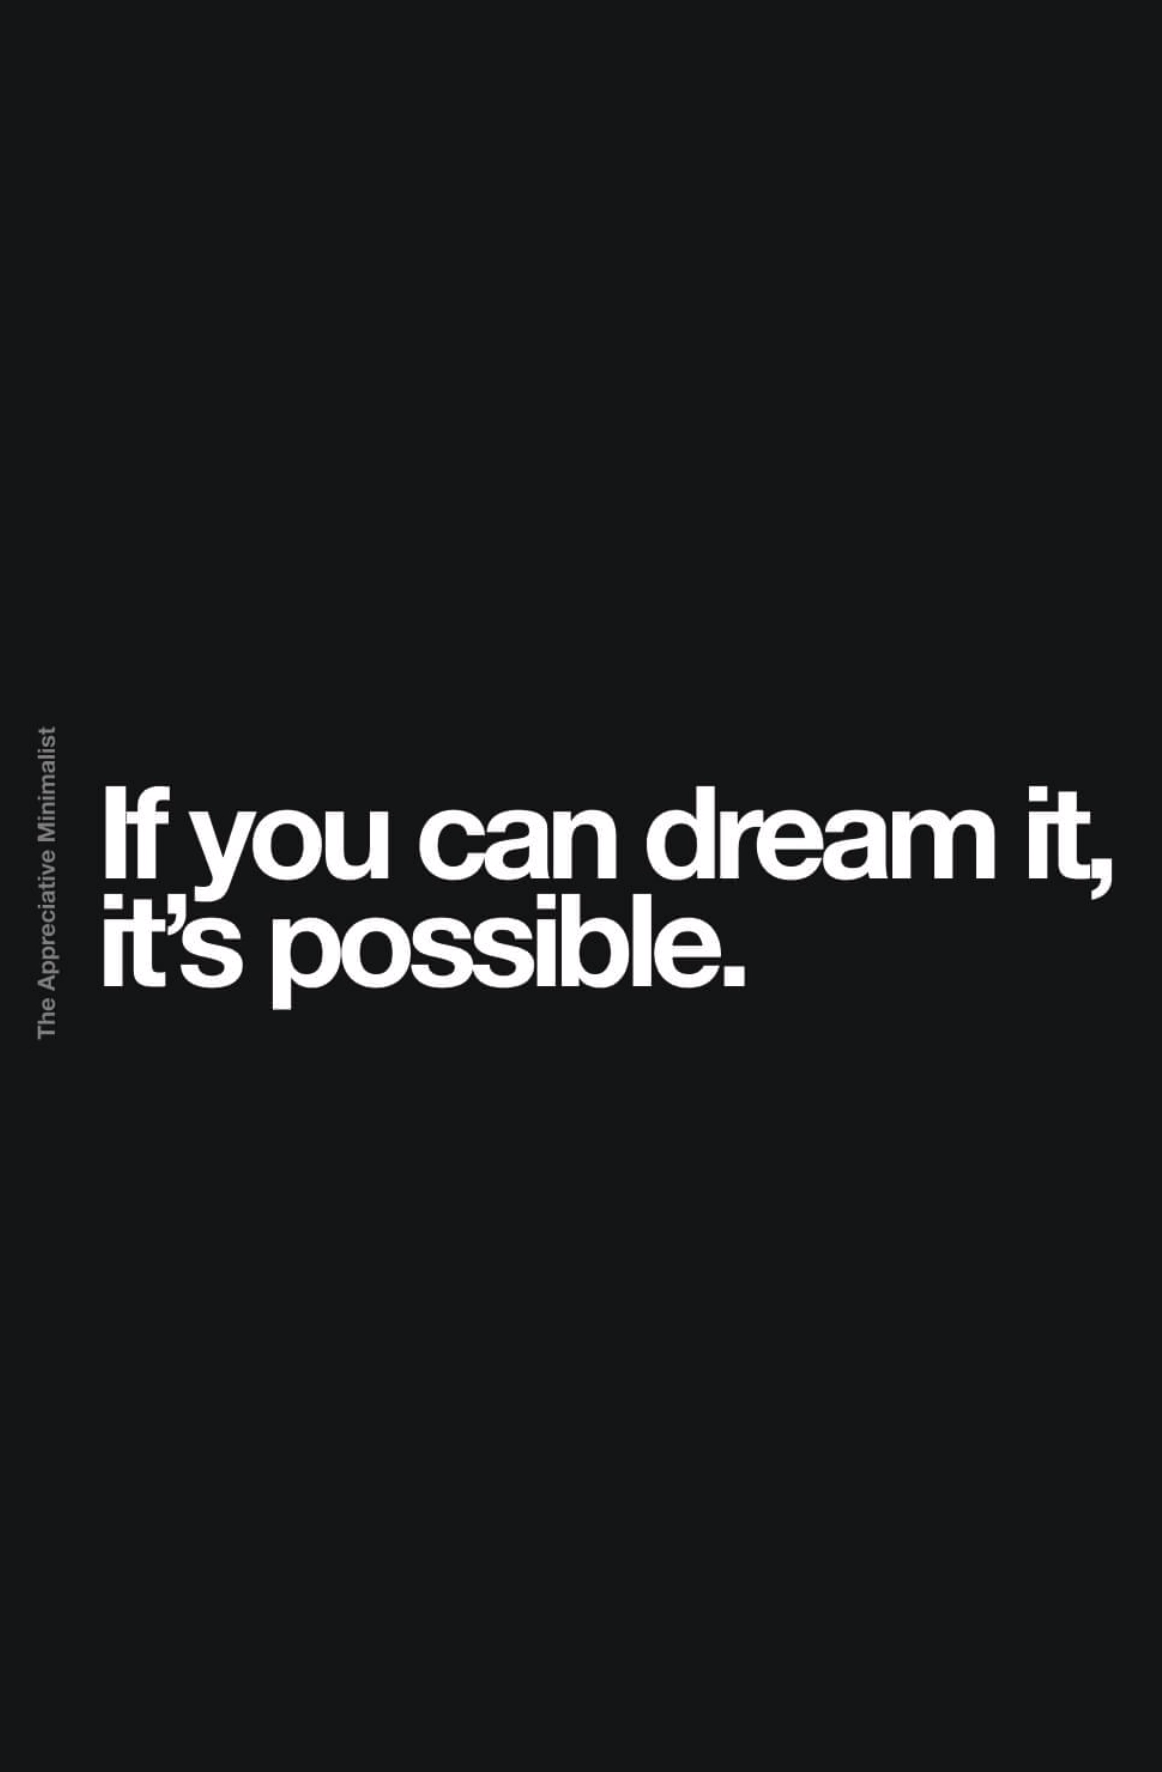 If you can dream it, it's possible.